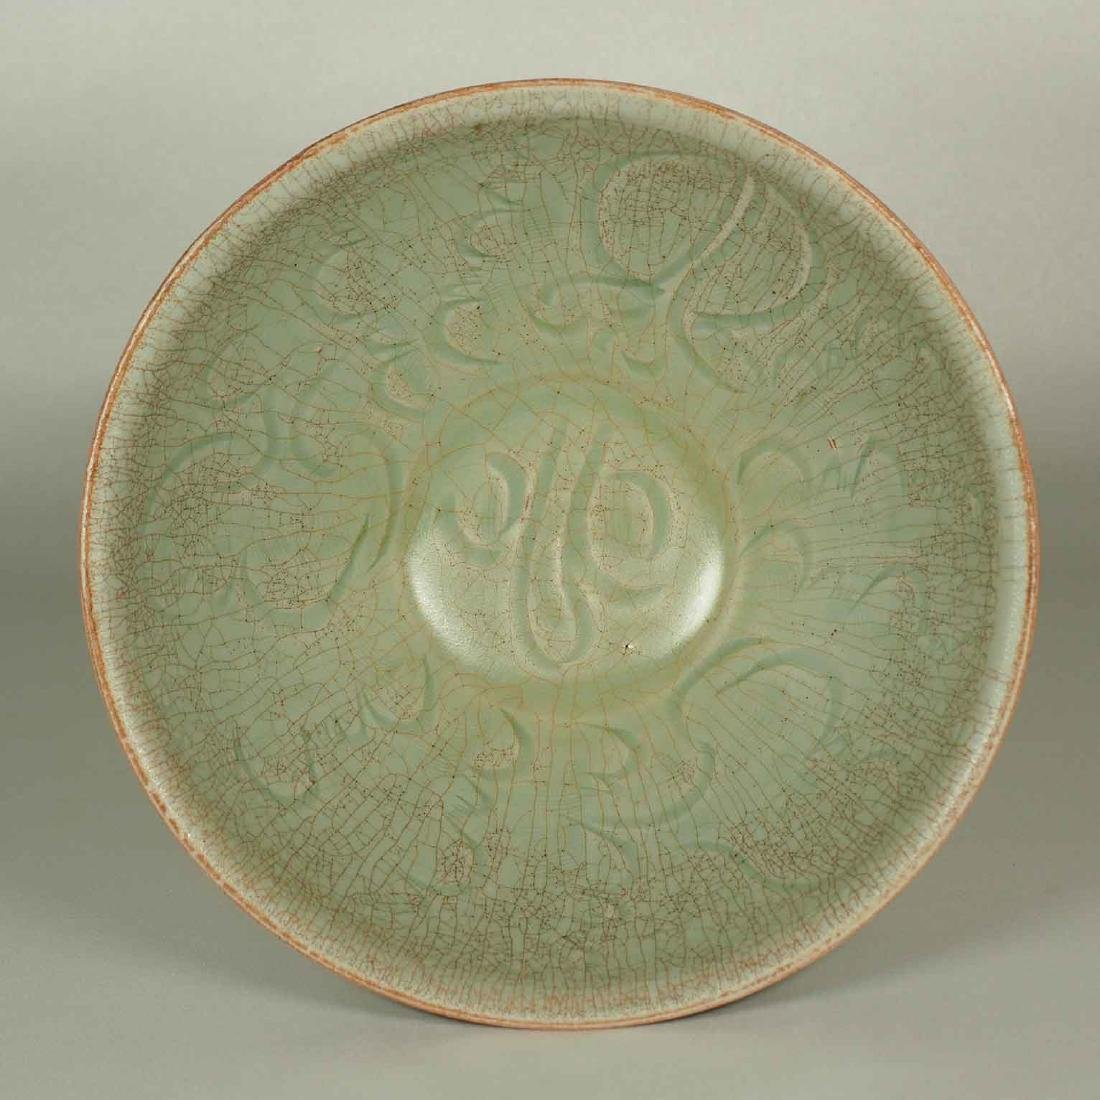 Celadon Bowl with Incised Design, Southern Song Dynasty